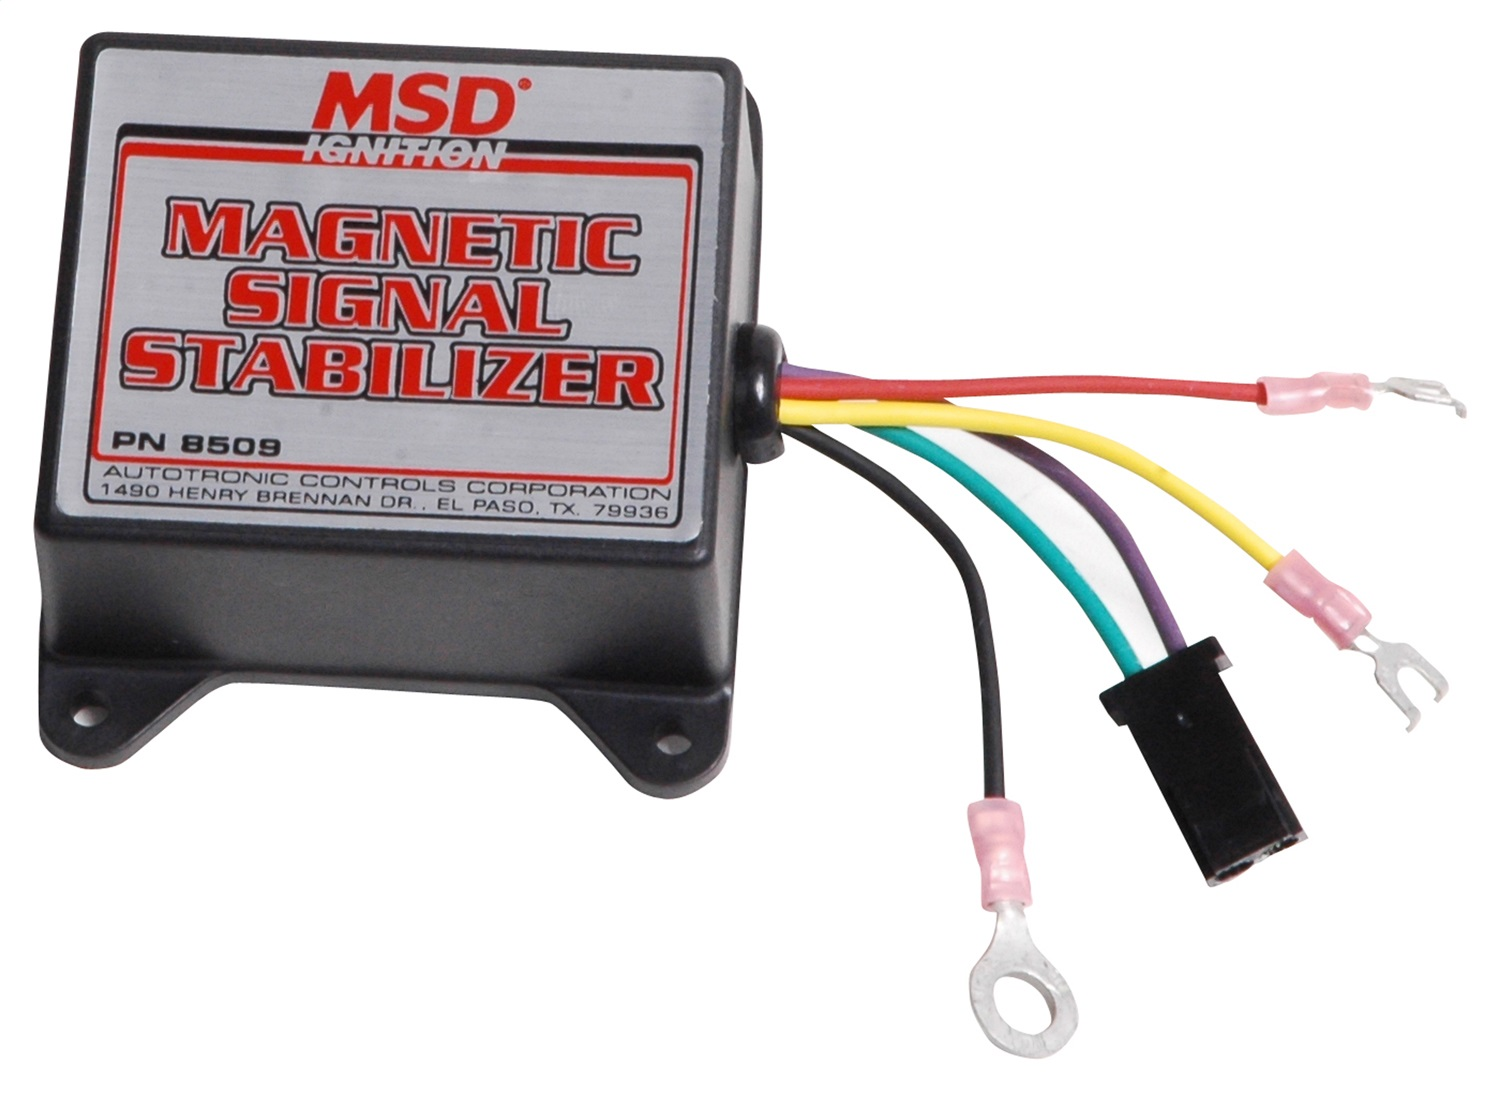 MSD Ignition 8509 Magnetic Signal Stabilizer